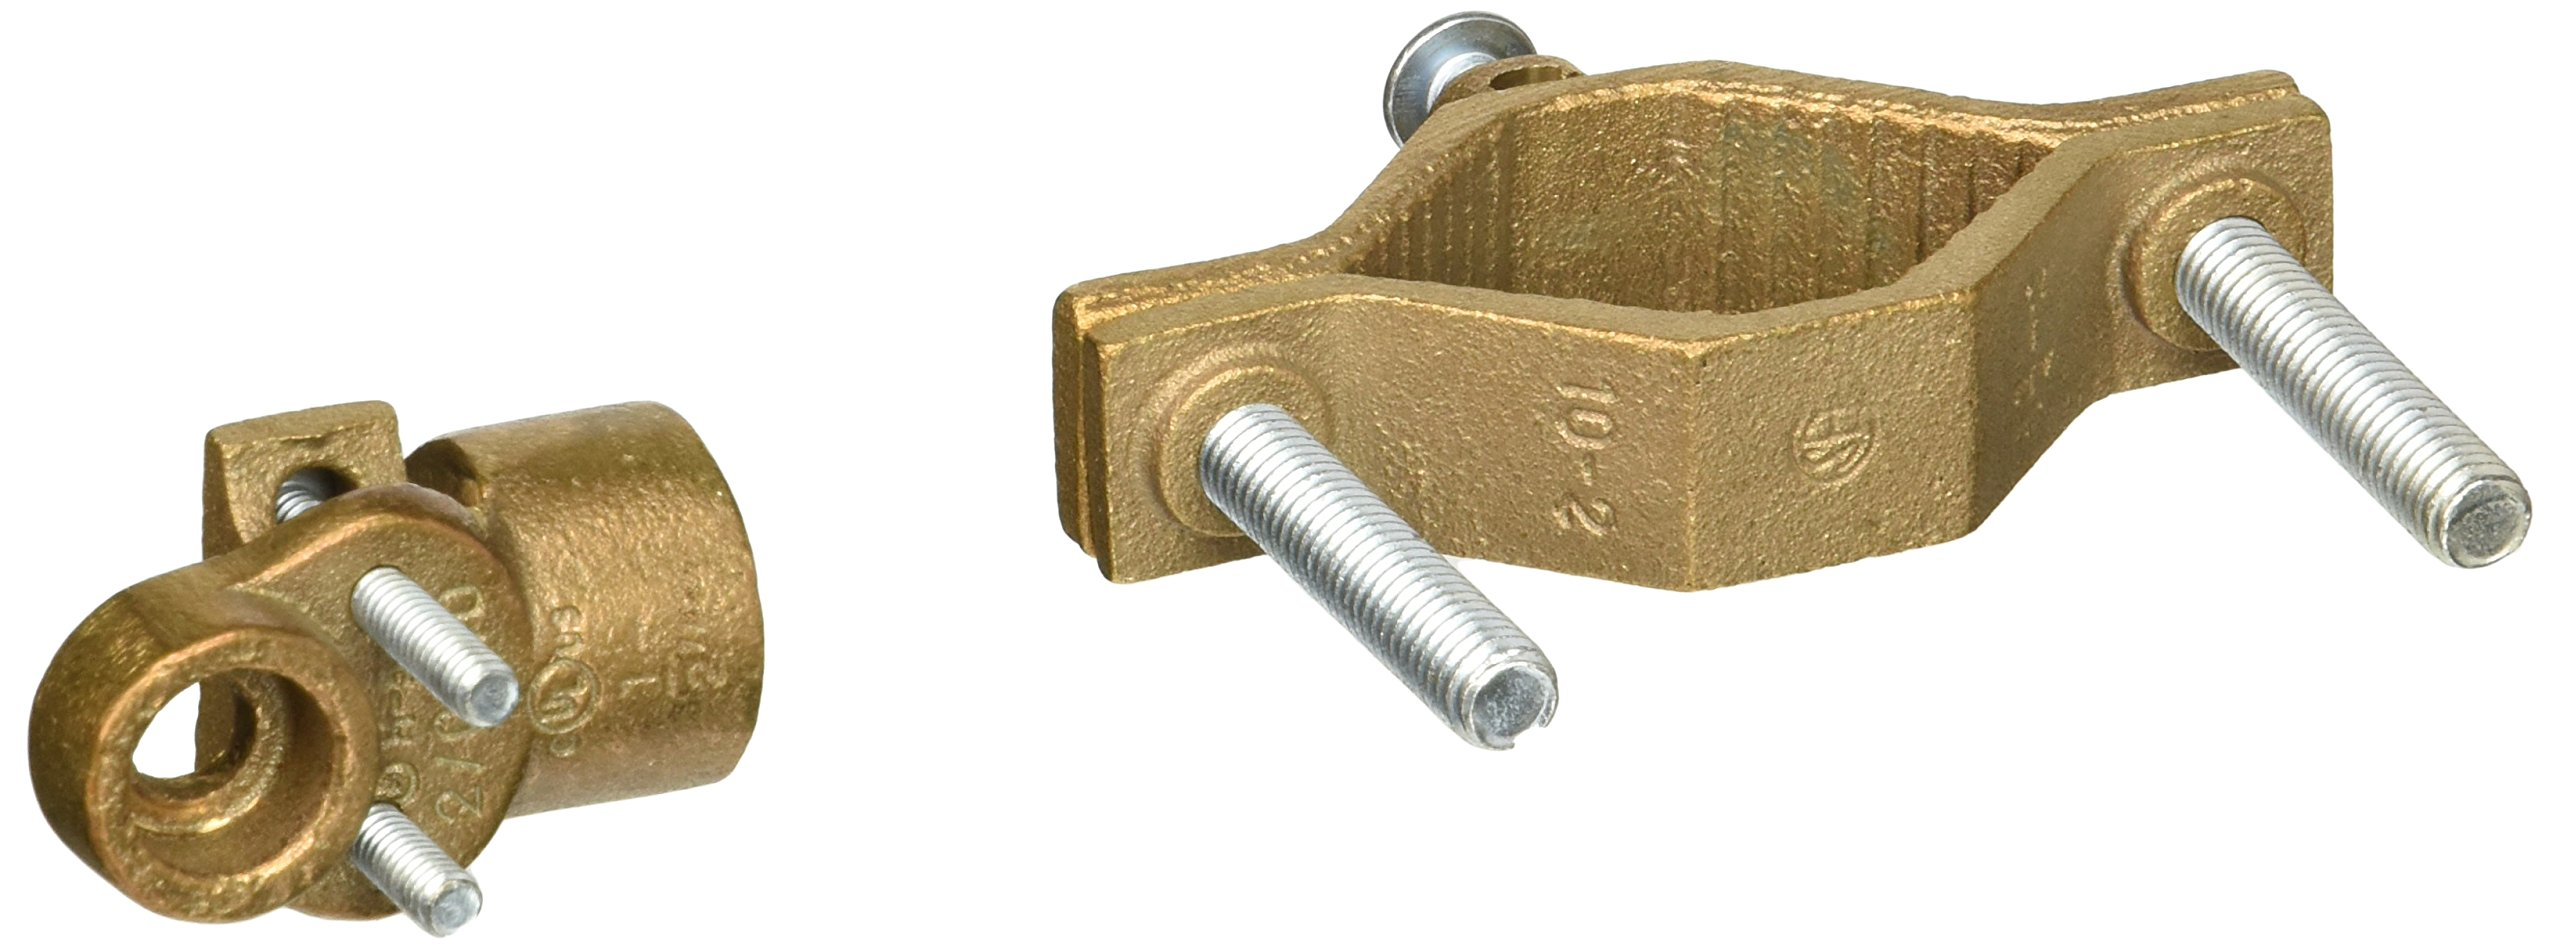 Bronze Ground Clamp with 360 Degree Adapters for Rigid Conduit 1.25-2in. Pipe